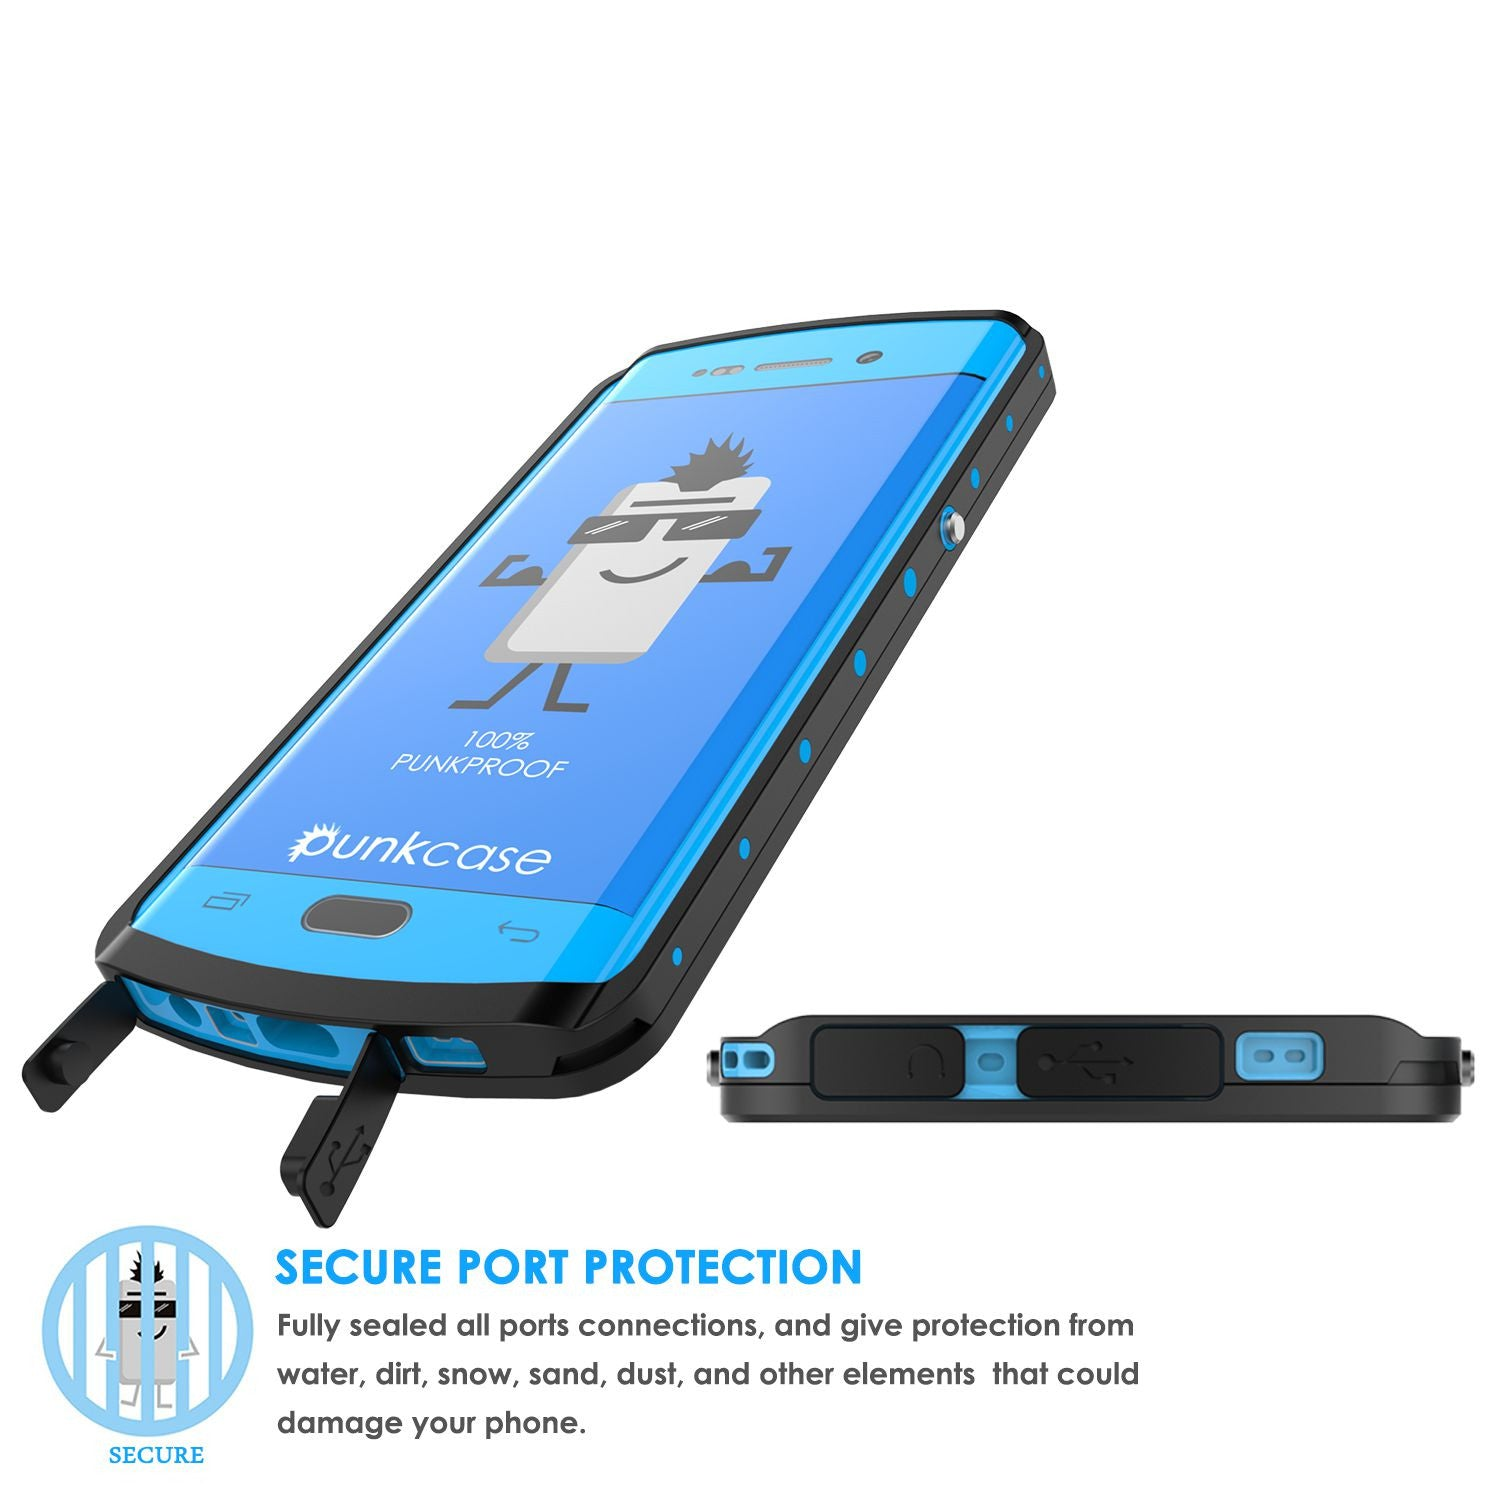 Galaxy s6 EDGE Plus Waterproof Case, Punkcase StudStar Light Blue Series | Lifetime Warranty